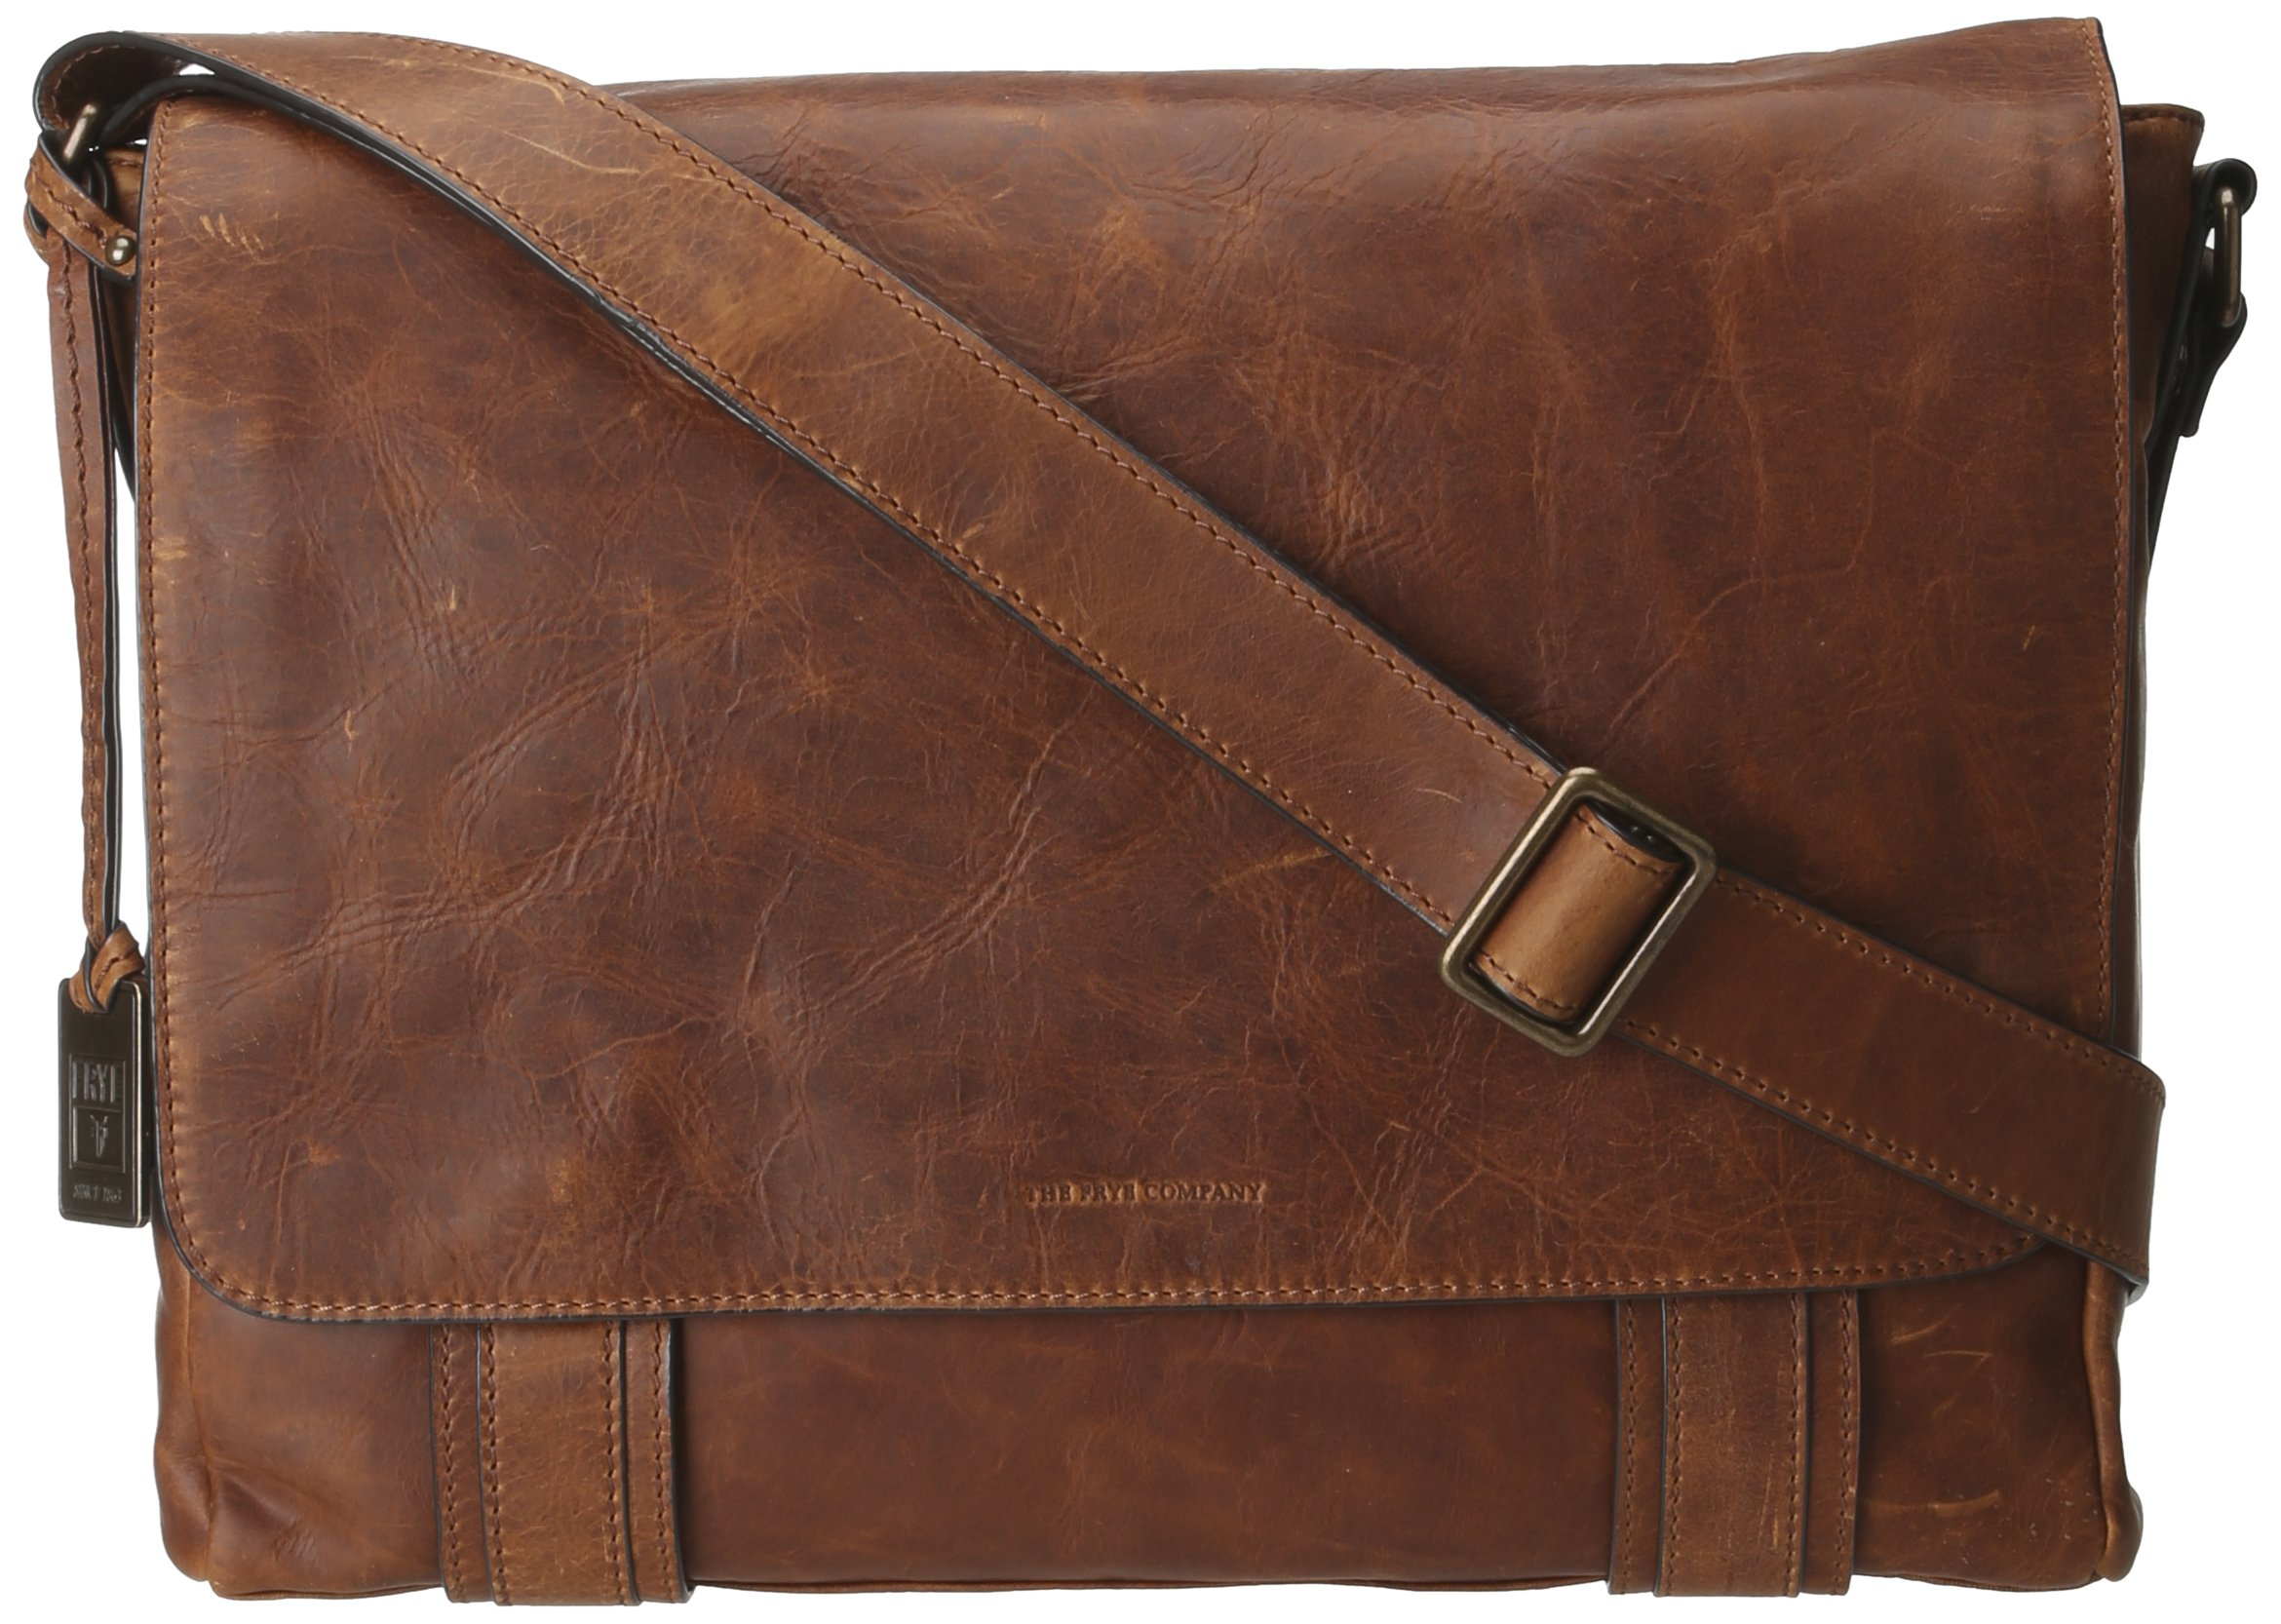 FRYE Men's Logan Messenger Bag, Cognac, One Size